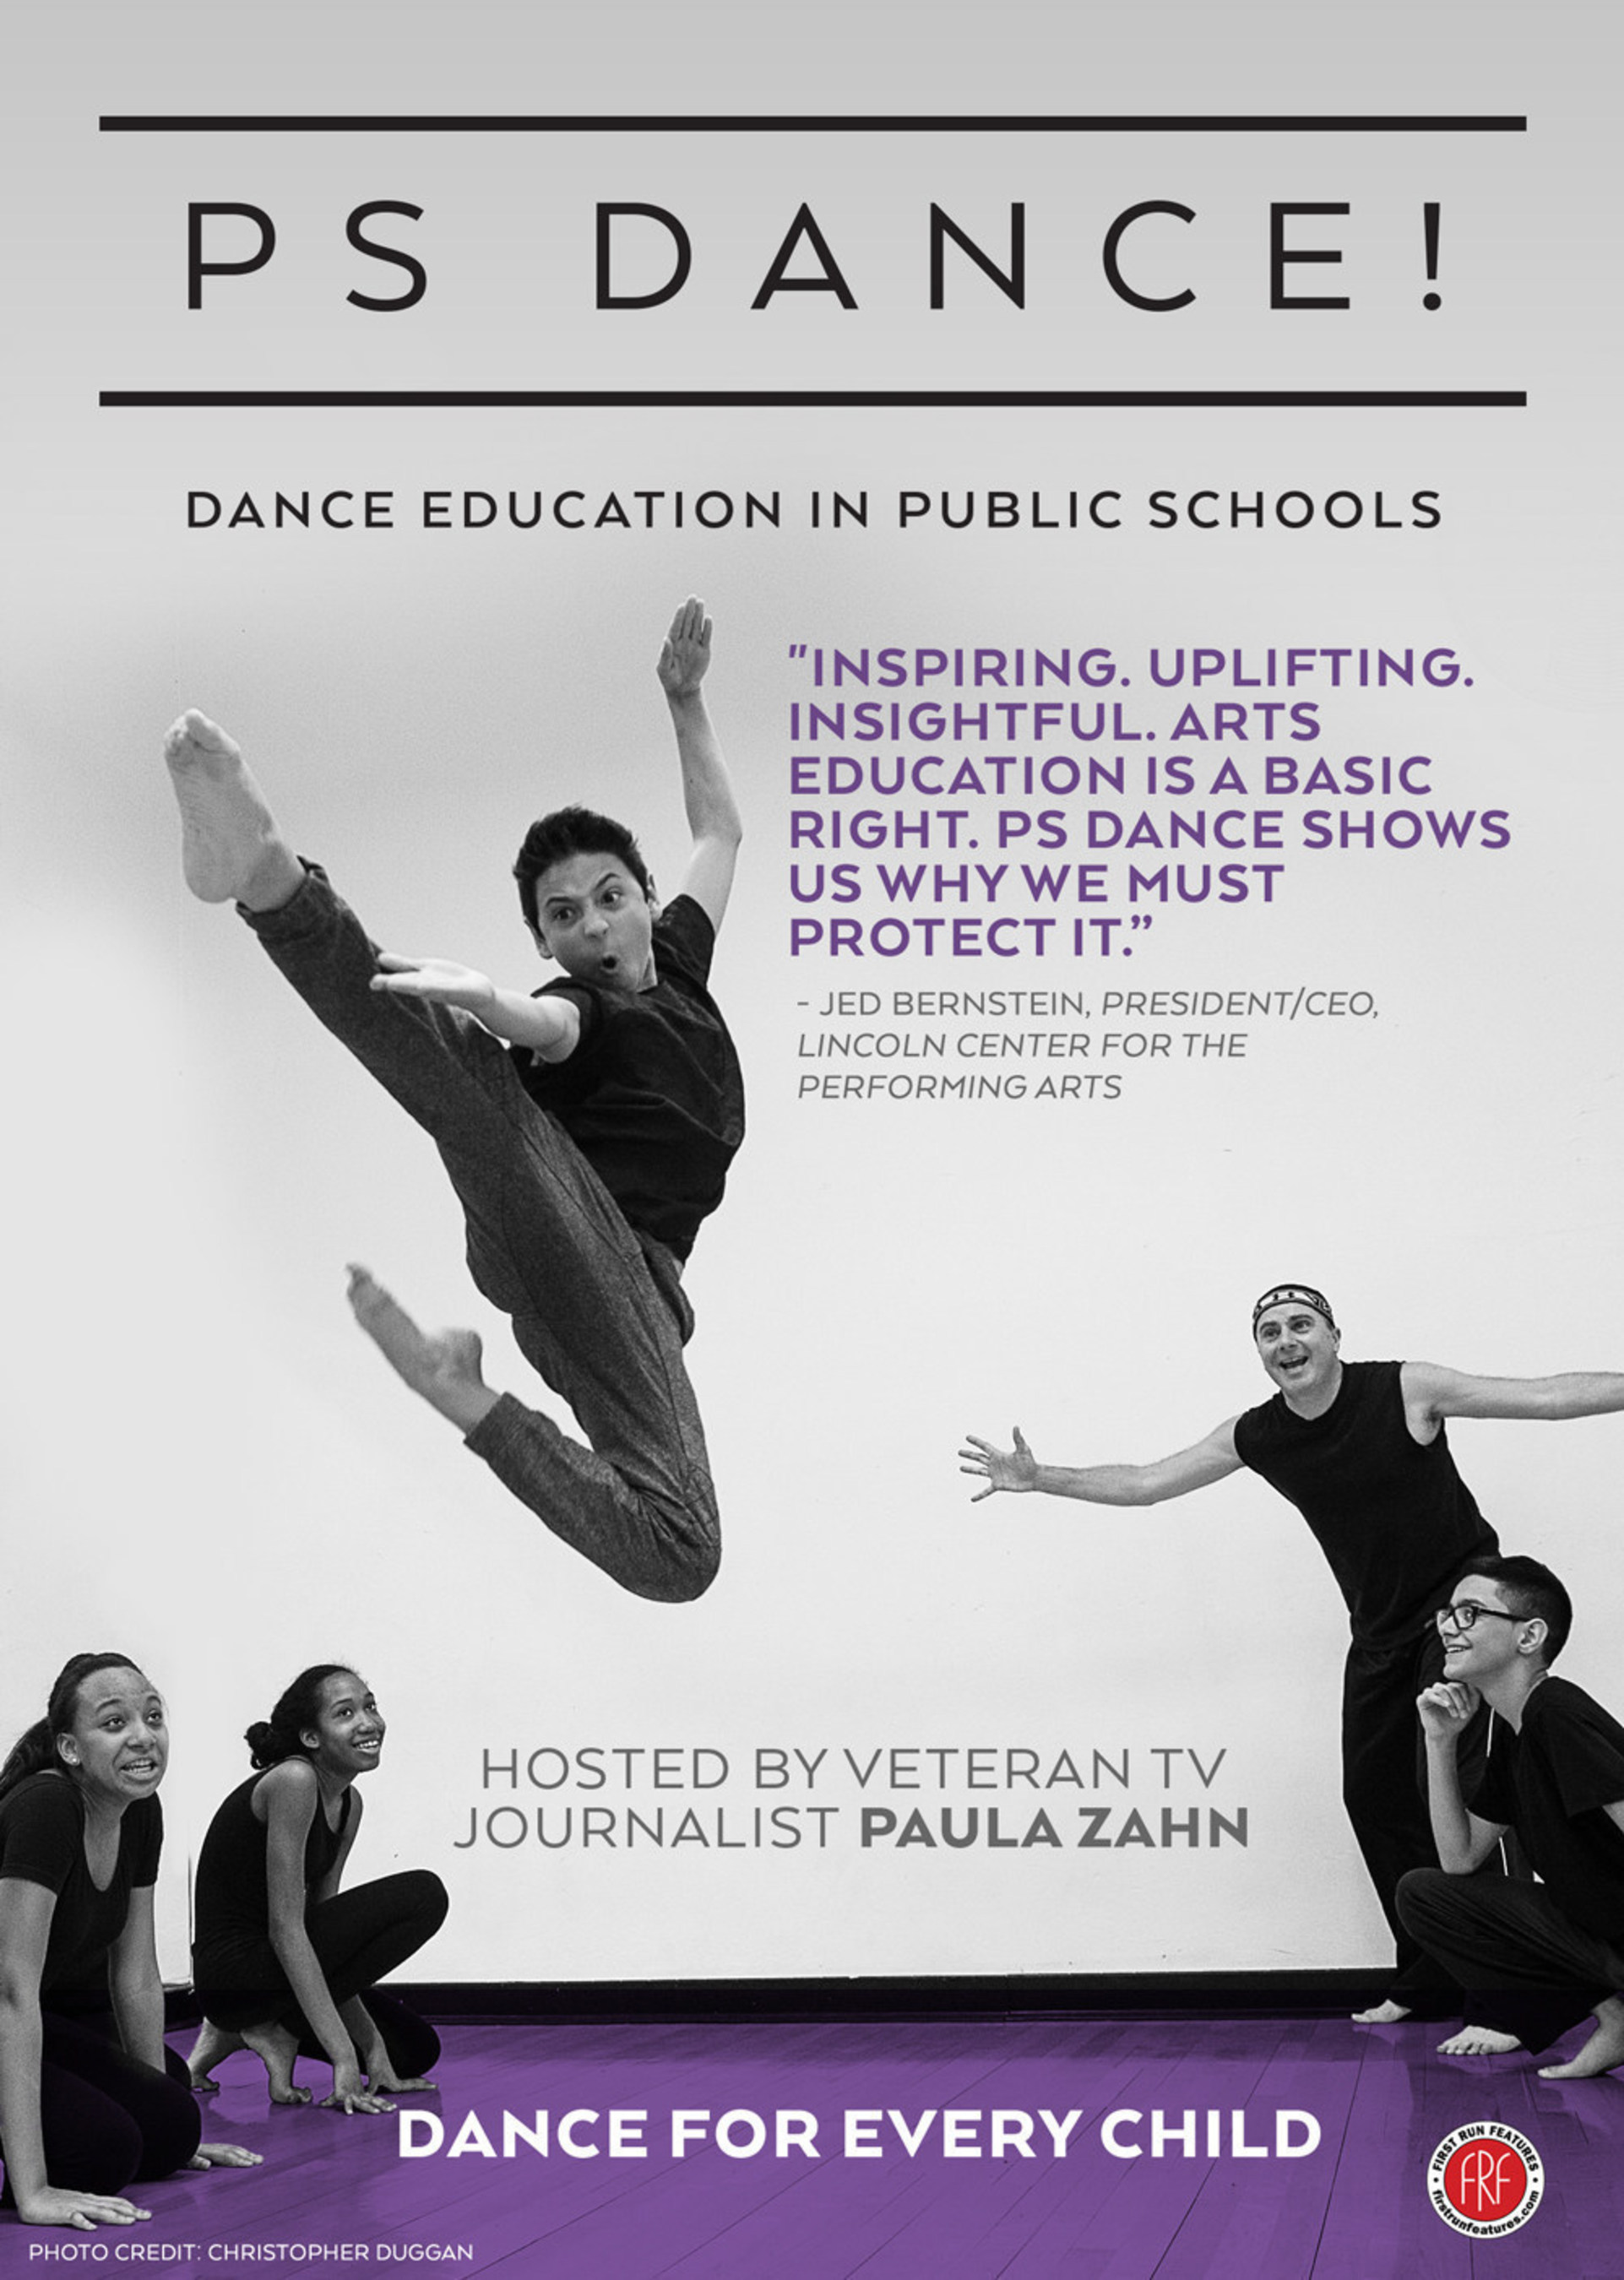 New Dance Education Documentary PS DANCE! Reveals Transformative Power Of Dance In Public Schools